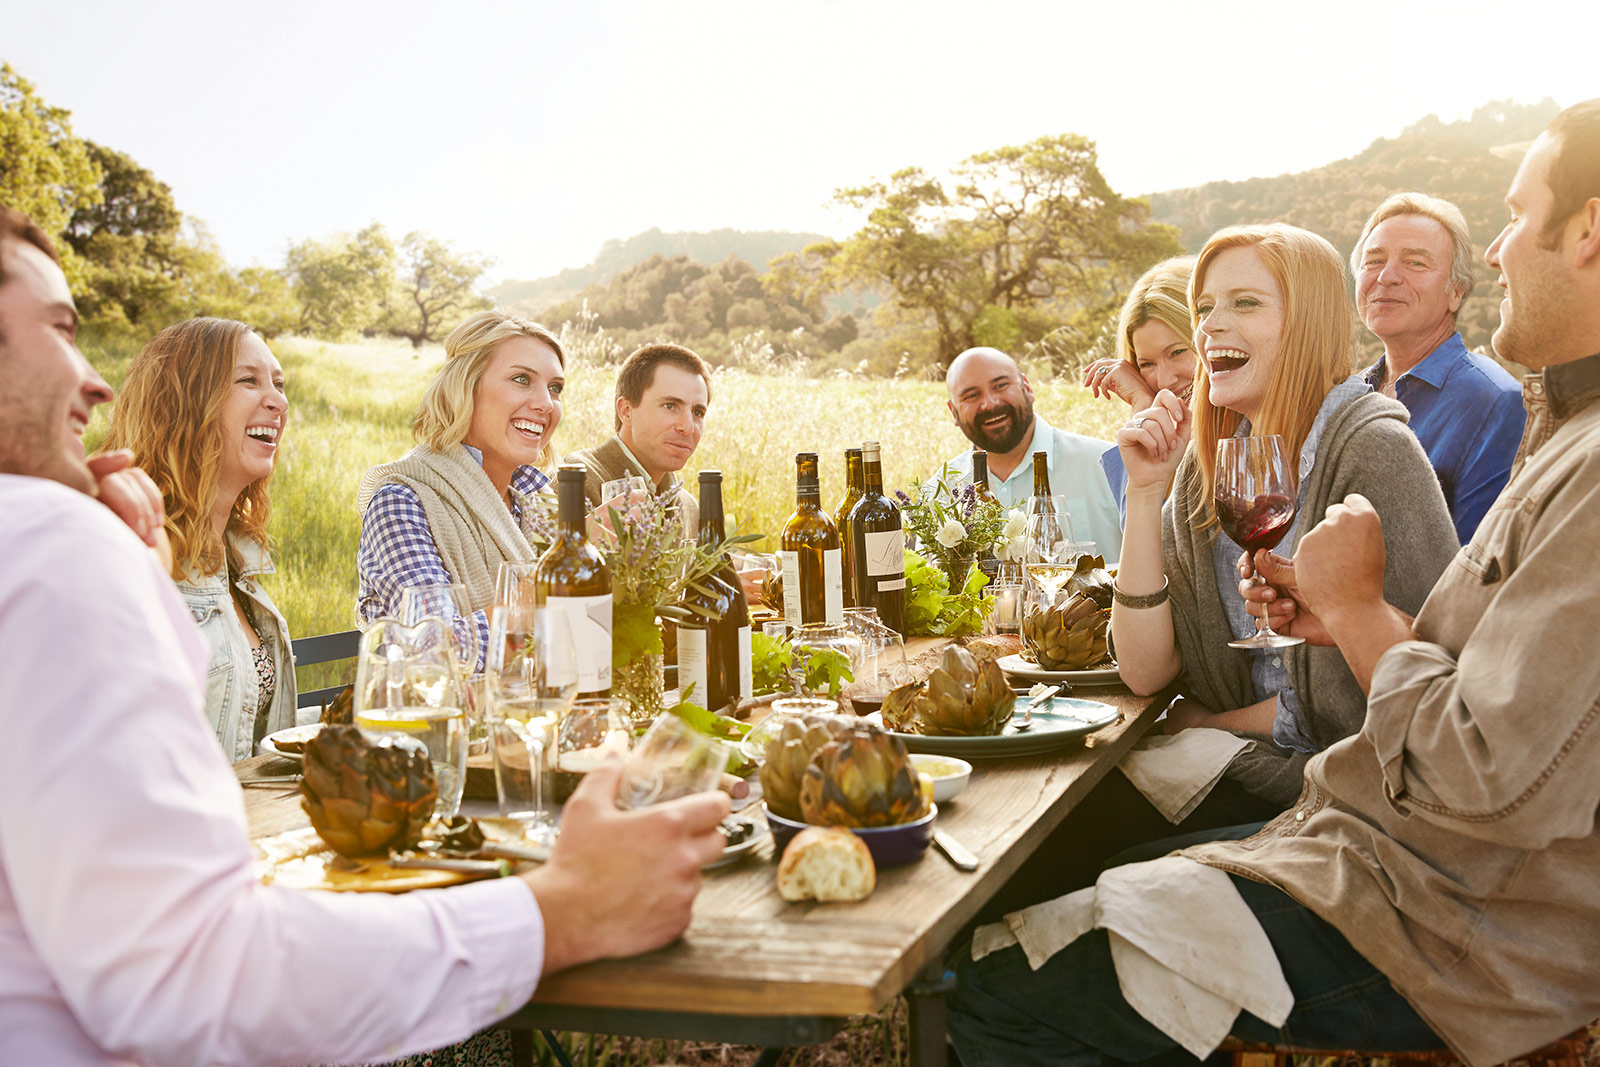 Farm to Table Dining with friends  | Dovis Bird Agency Photography